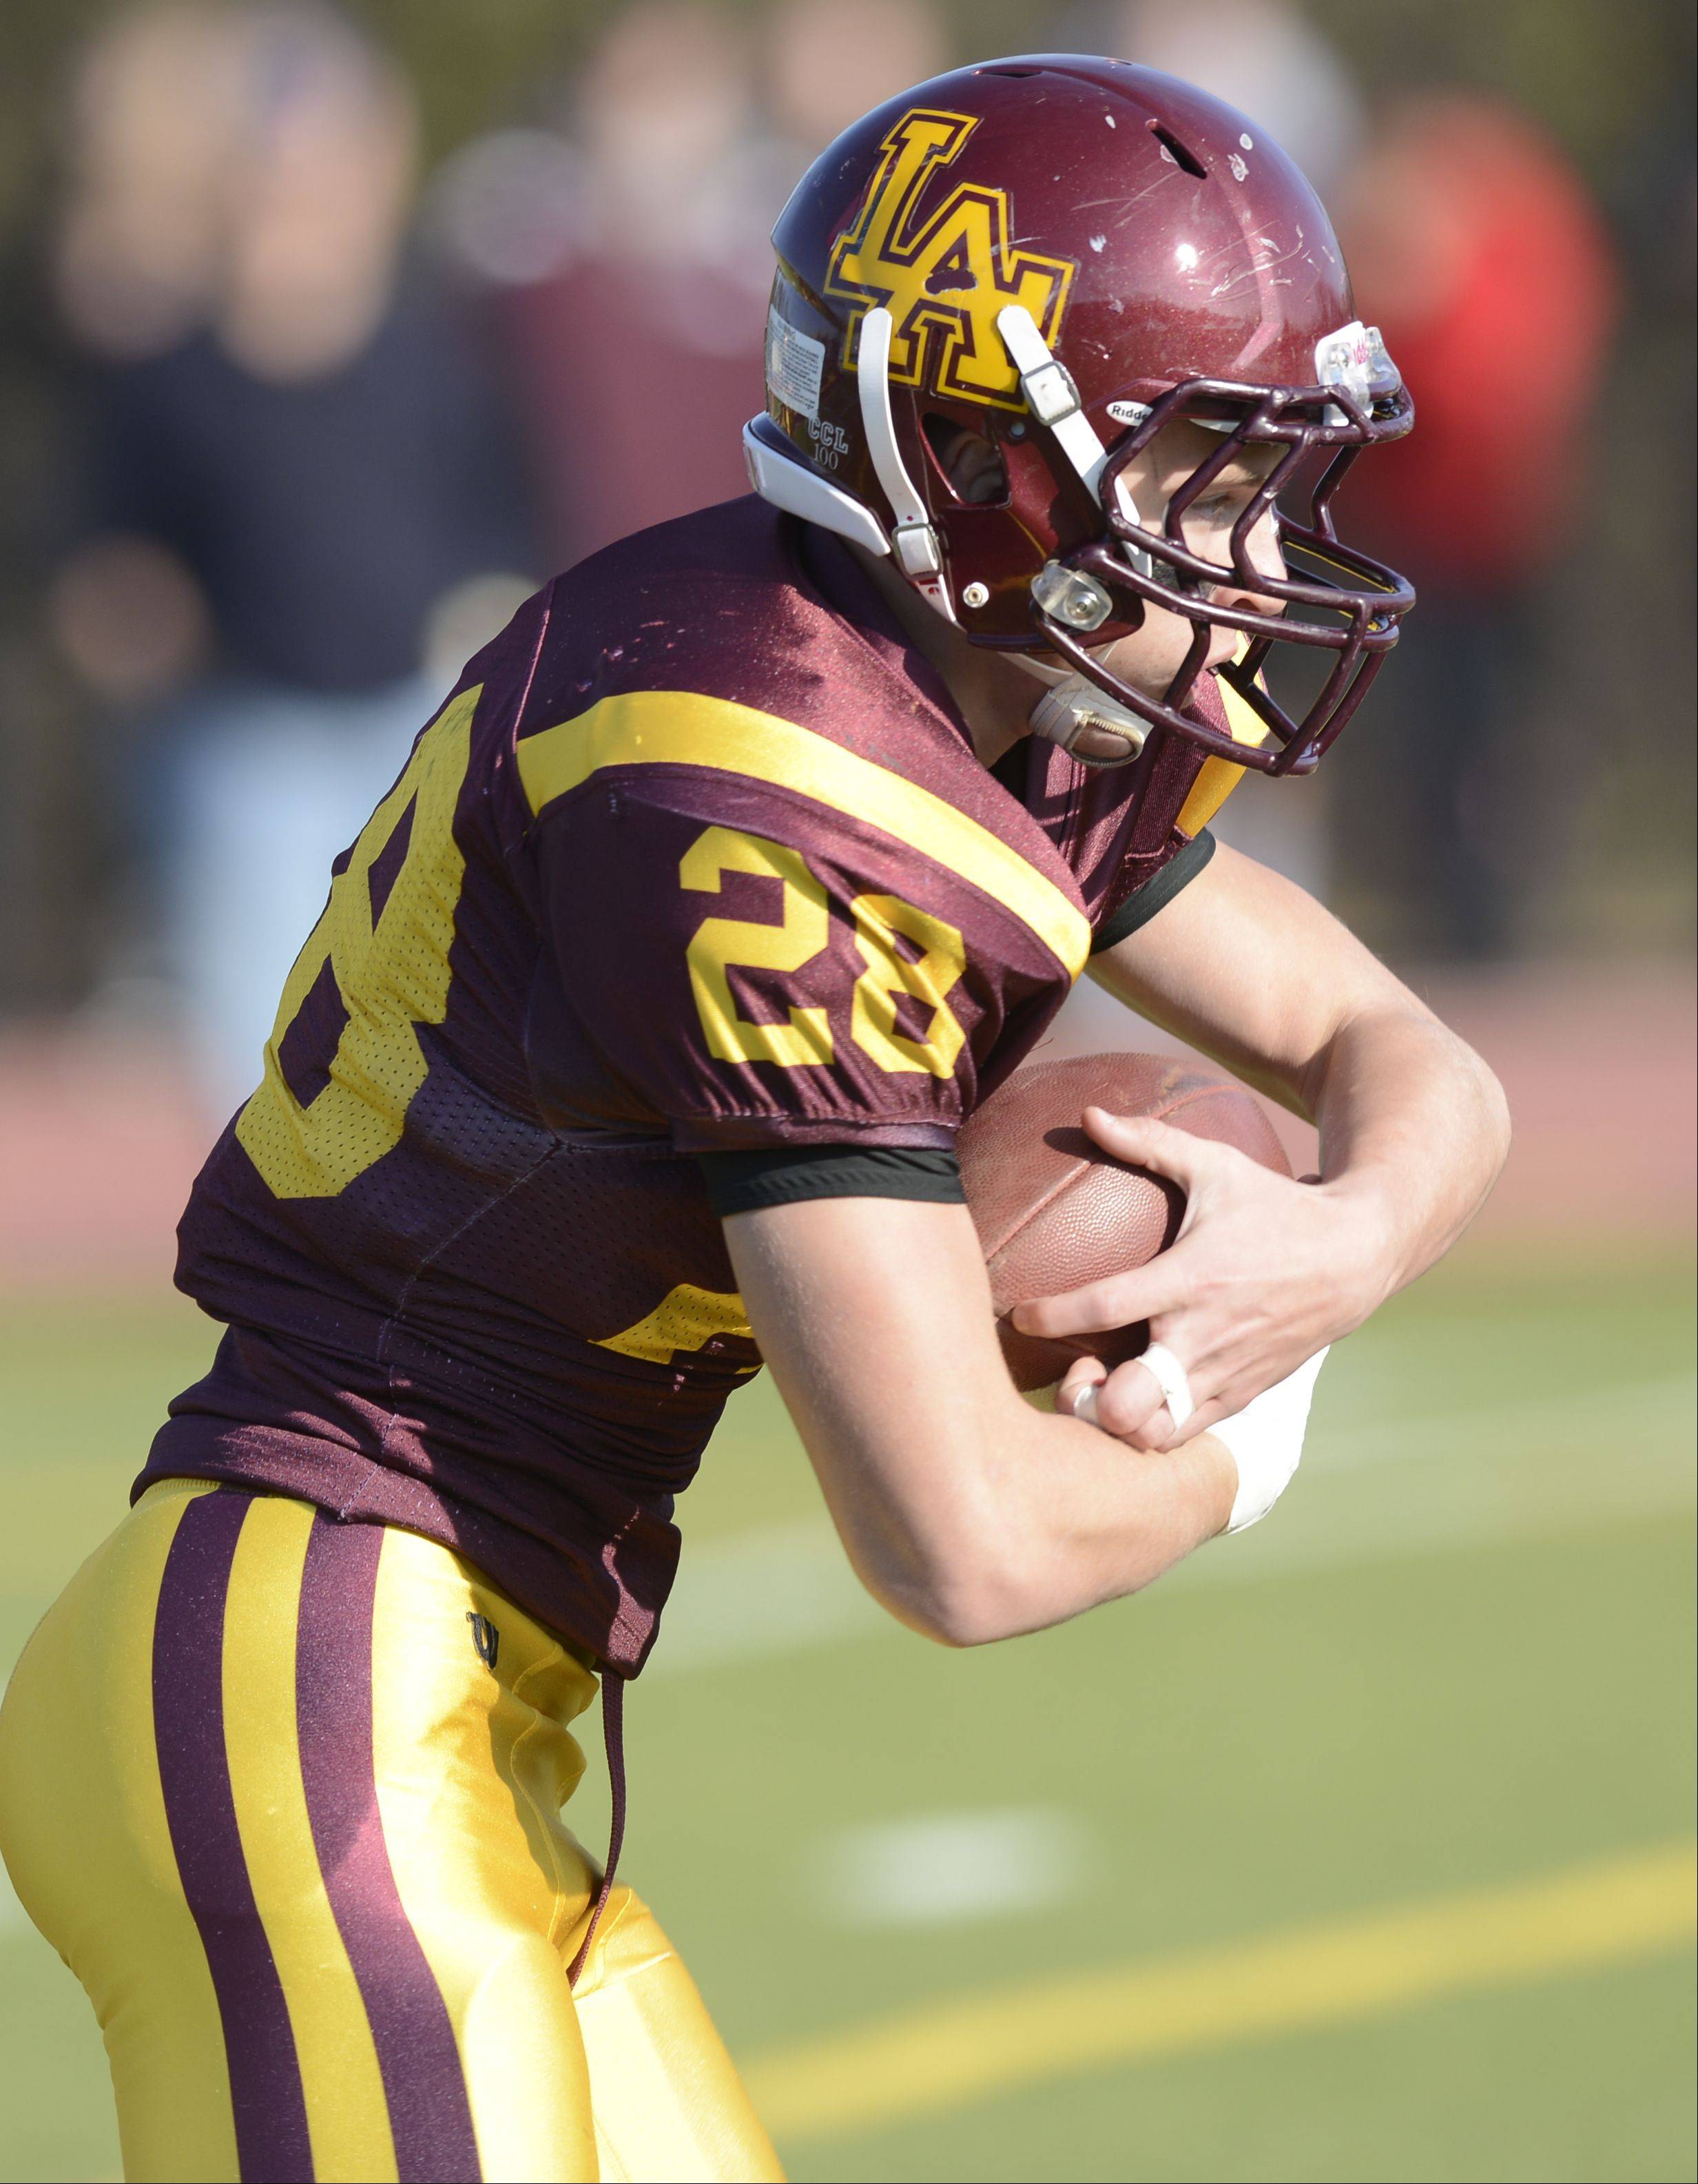 Loyola Academy hosted Glenbard North Saturday afternoon for IHSA state semifinal football action at Loyola Academy in Wilmette.